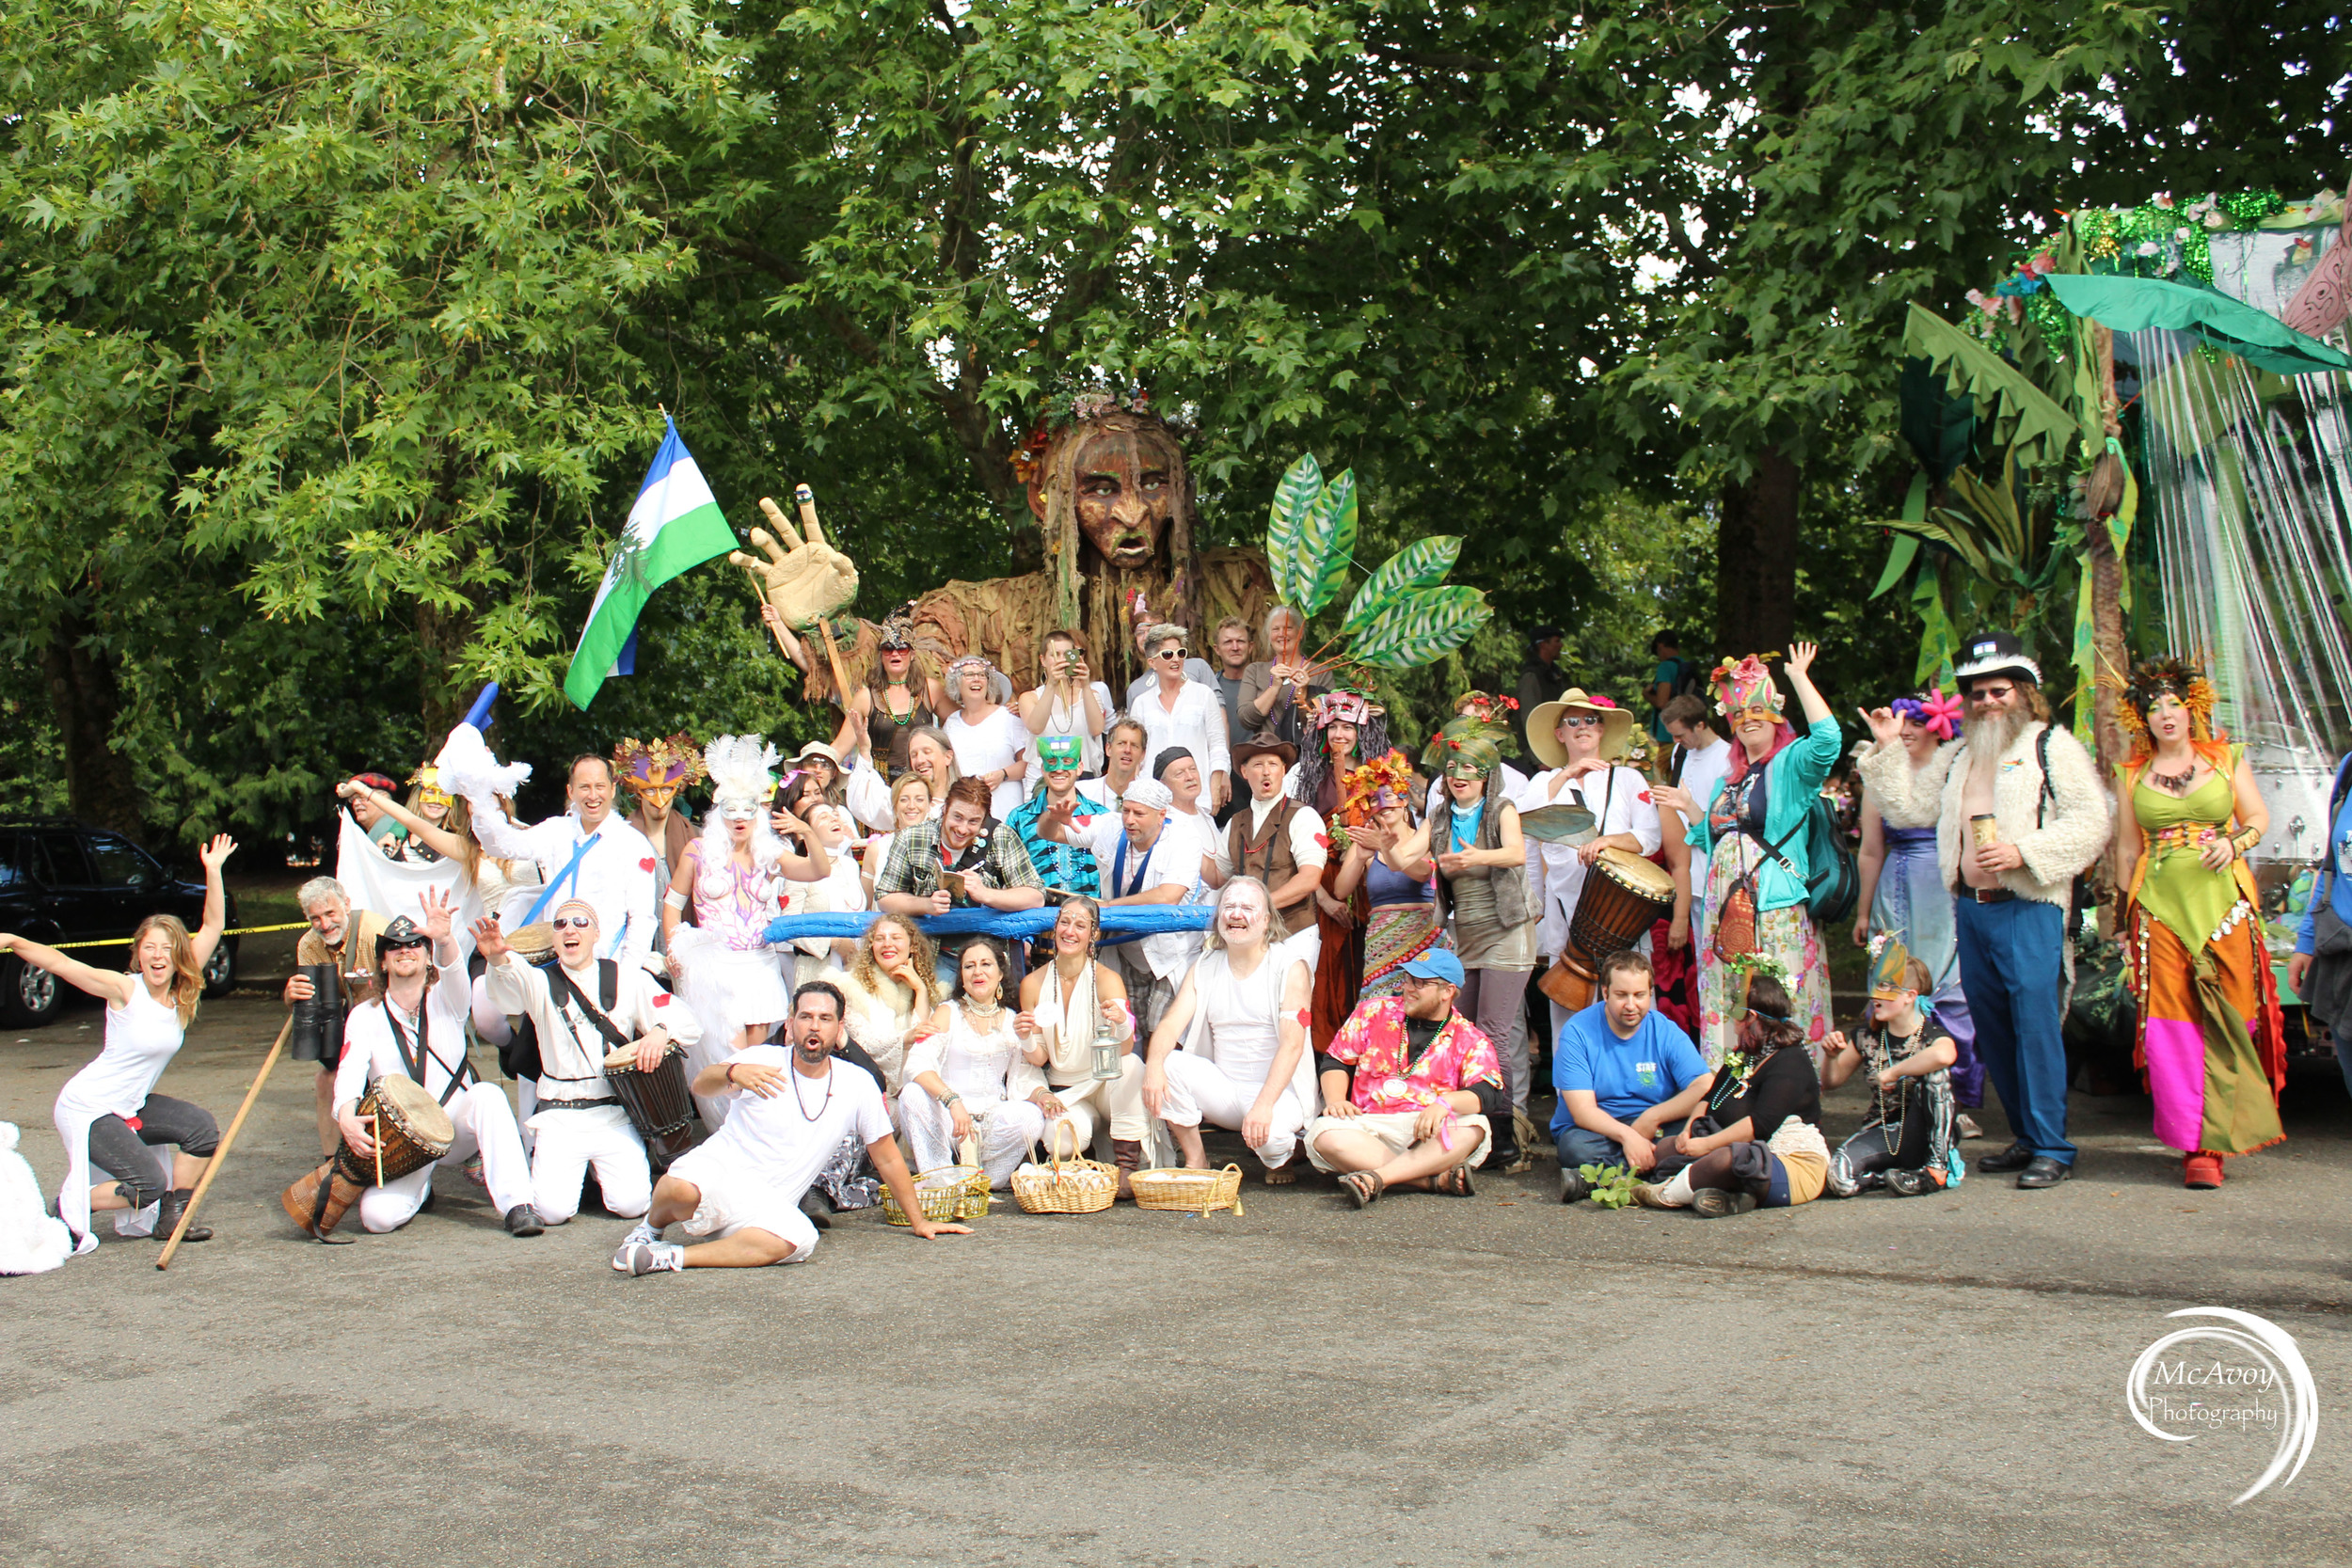 Dream Dance Cascadia, Fremont Drum All-Stars, Mythica Village, CascadiaNow!, and all the wonderful volunteers came together to create a magical parade experience for the community.